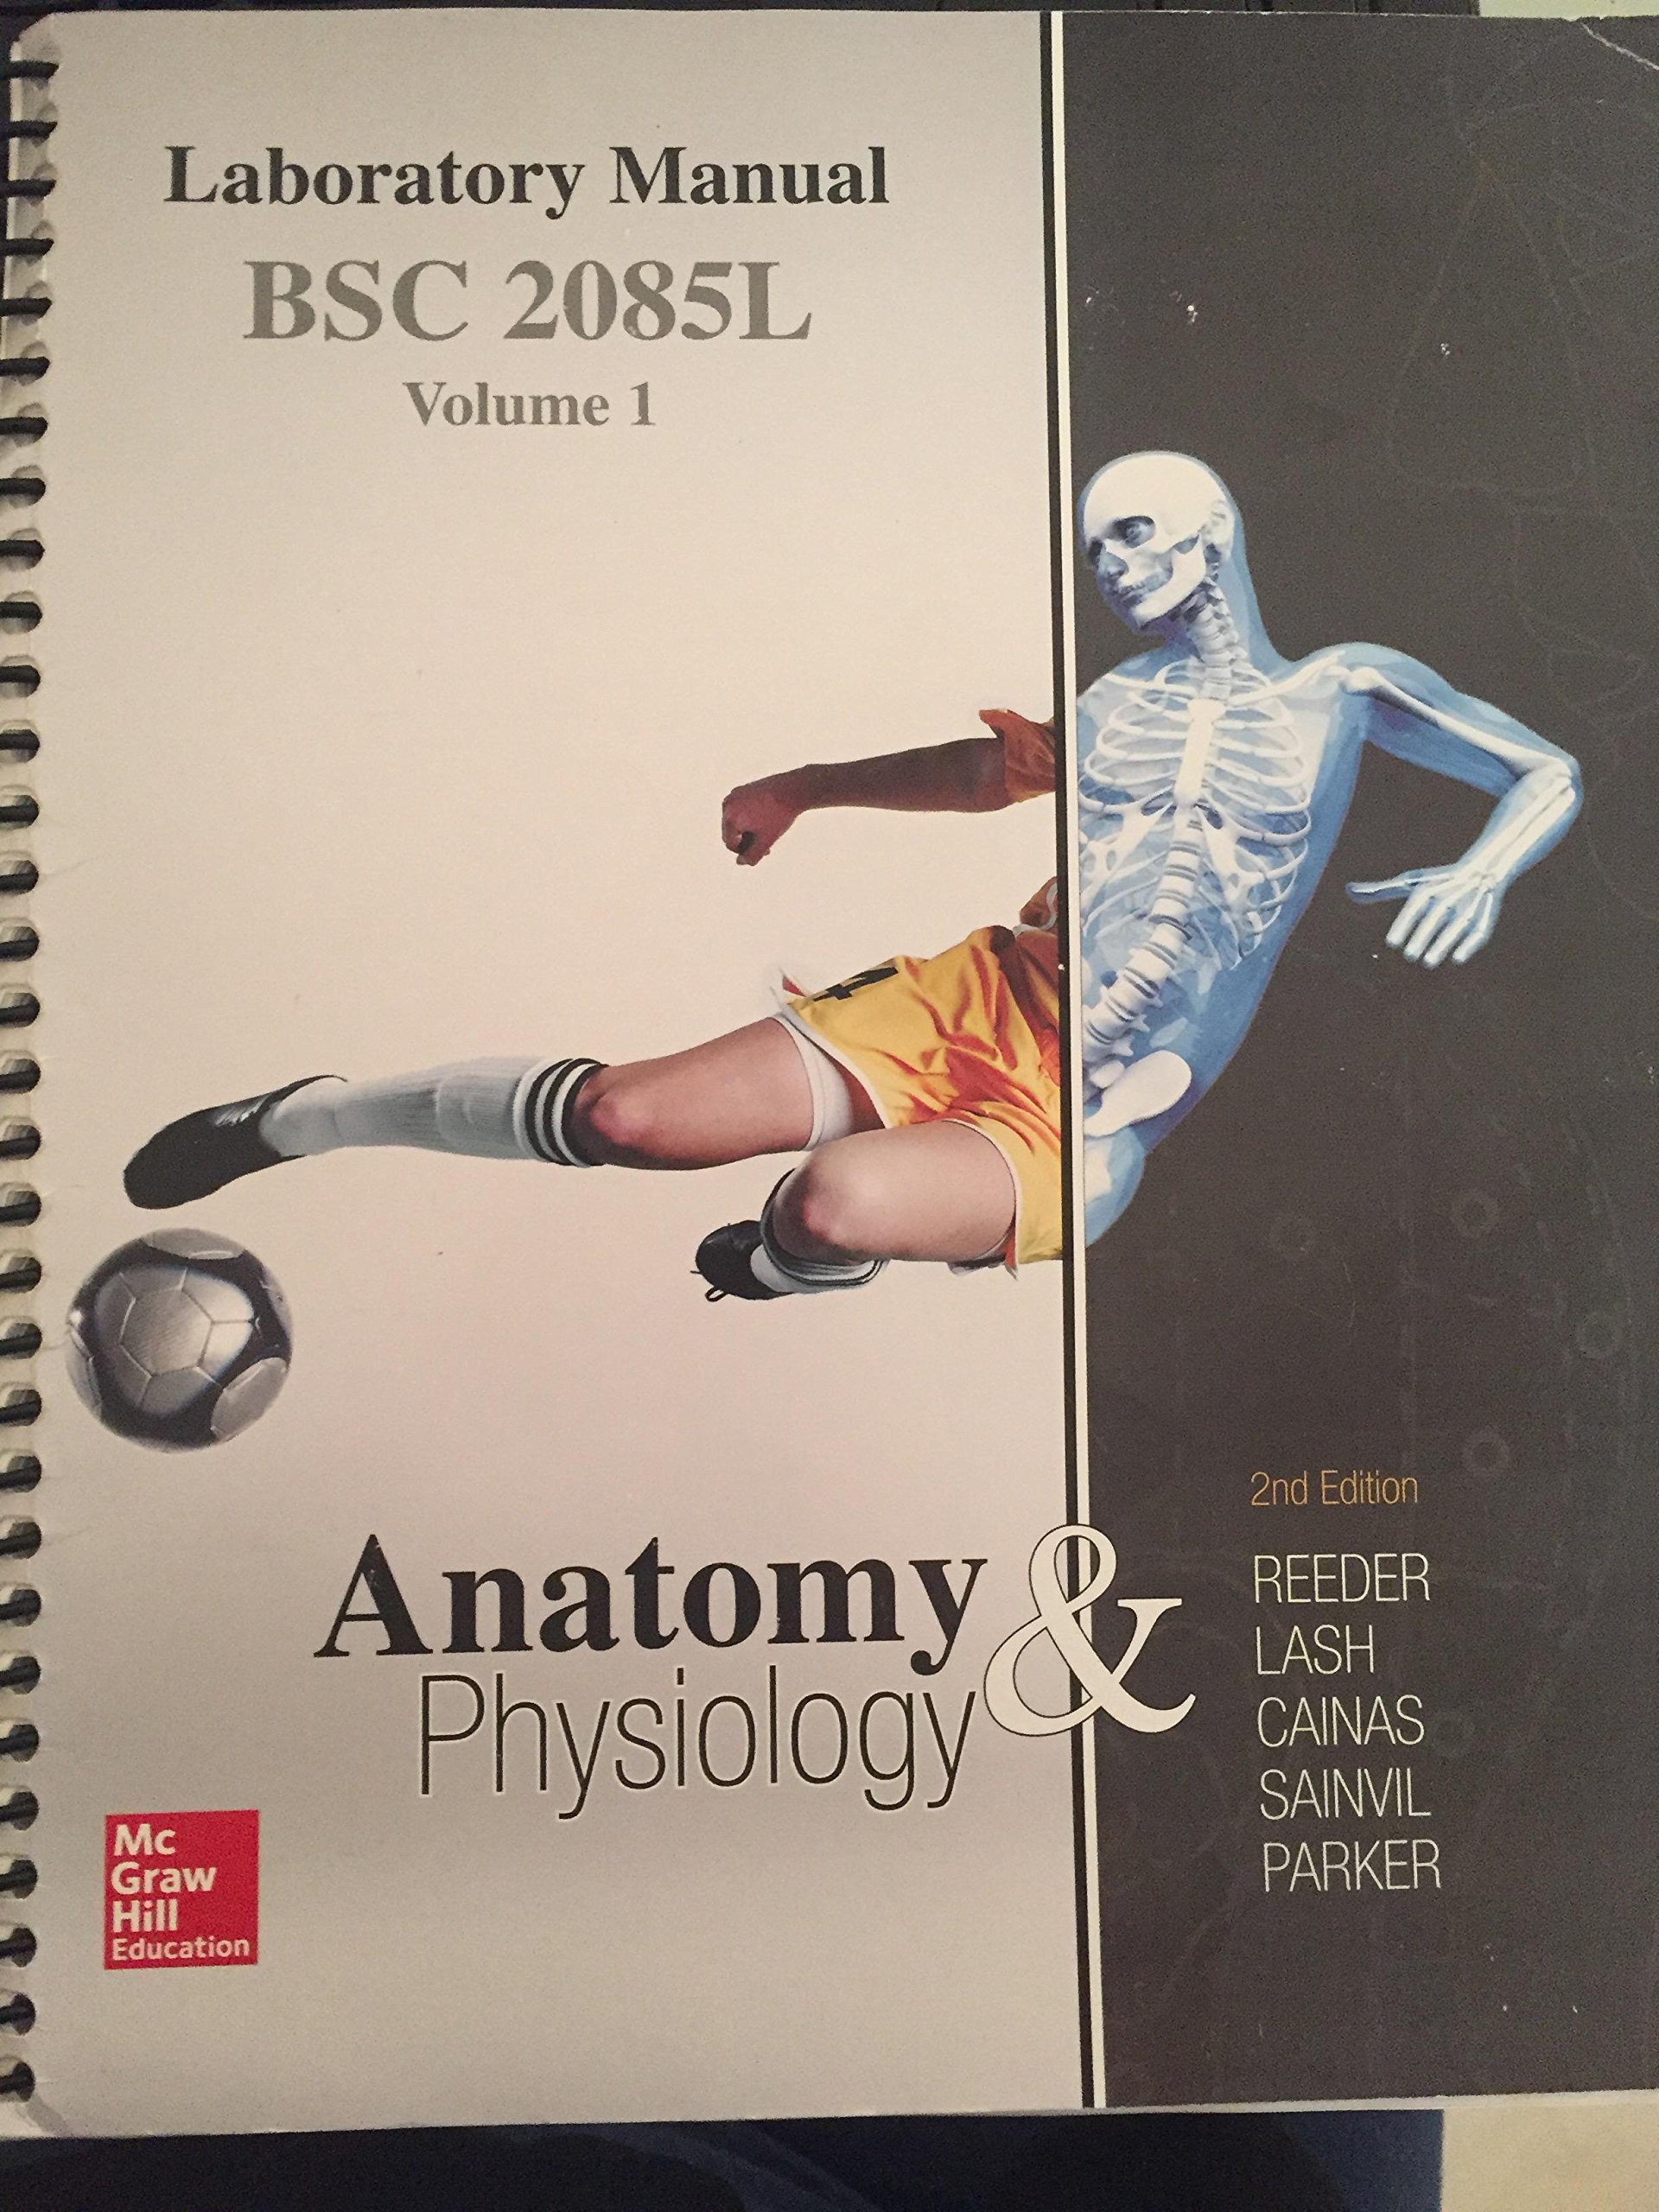 Anatomy and Physiology Laboratory Manual Second Edition BSC2085L Volume 1:  Greg Reeder: 9781260156799: Amazon.com: Books